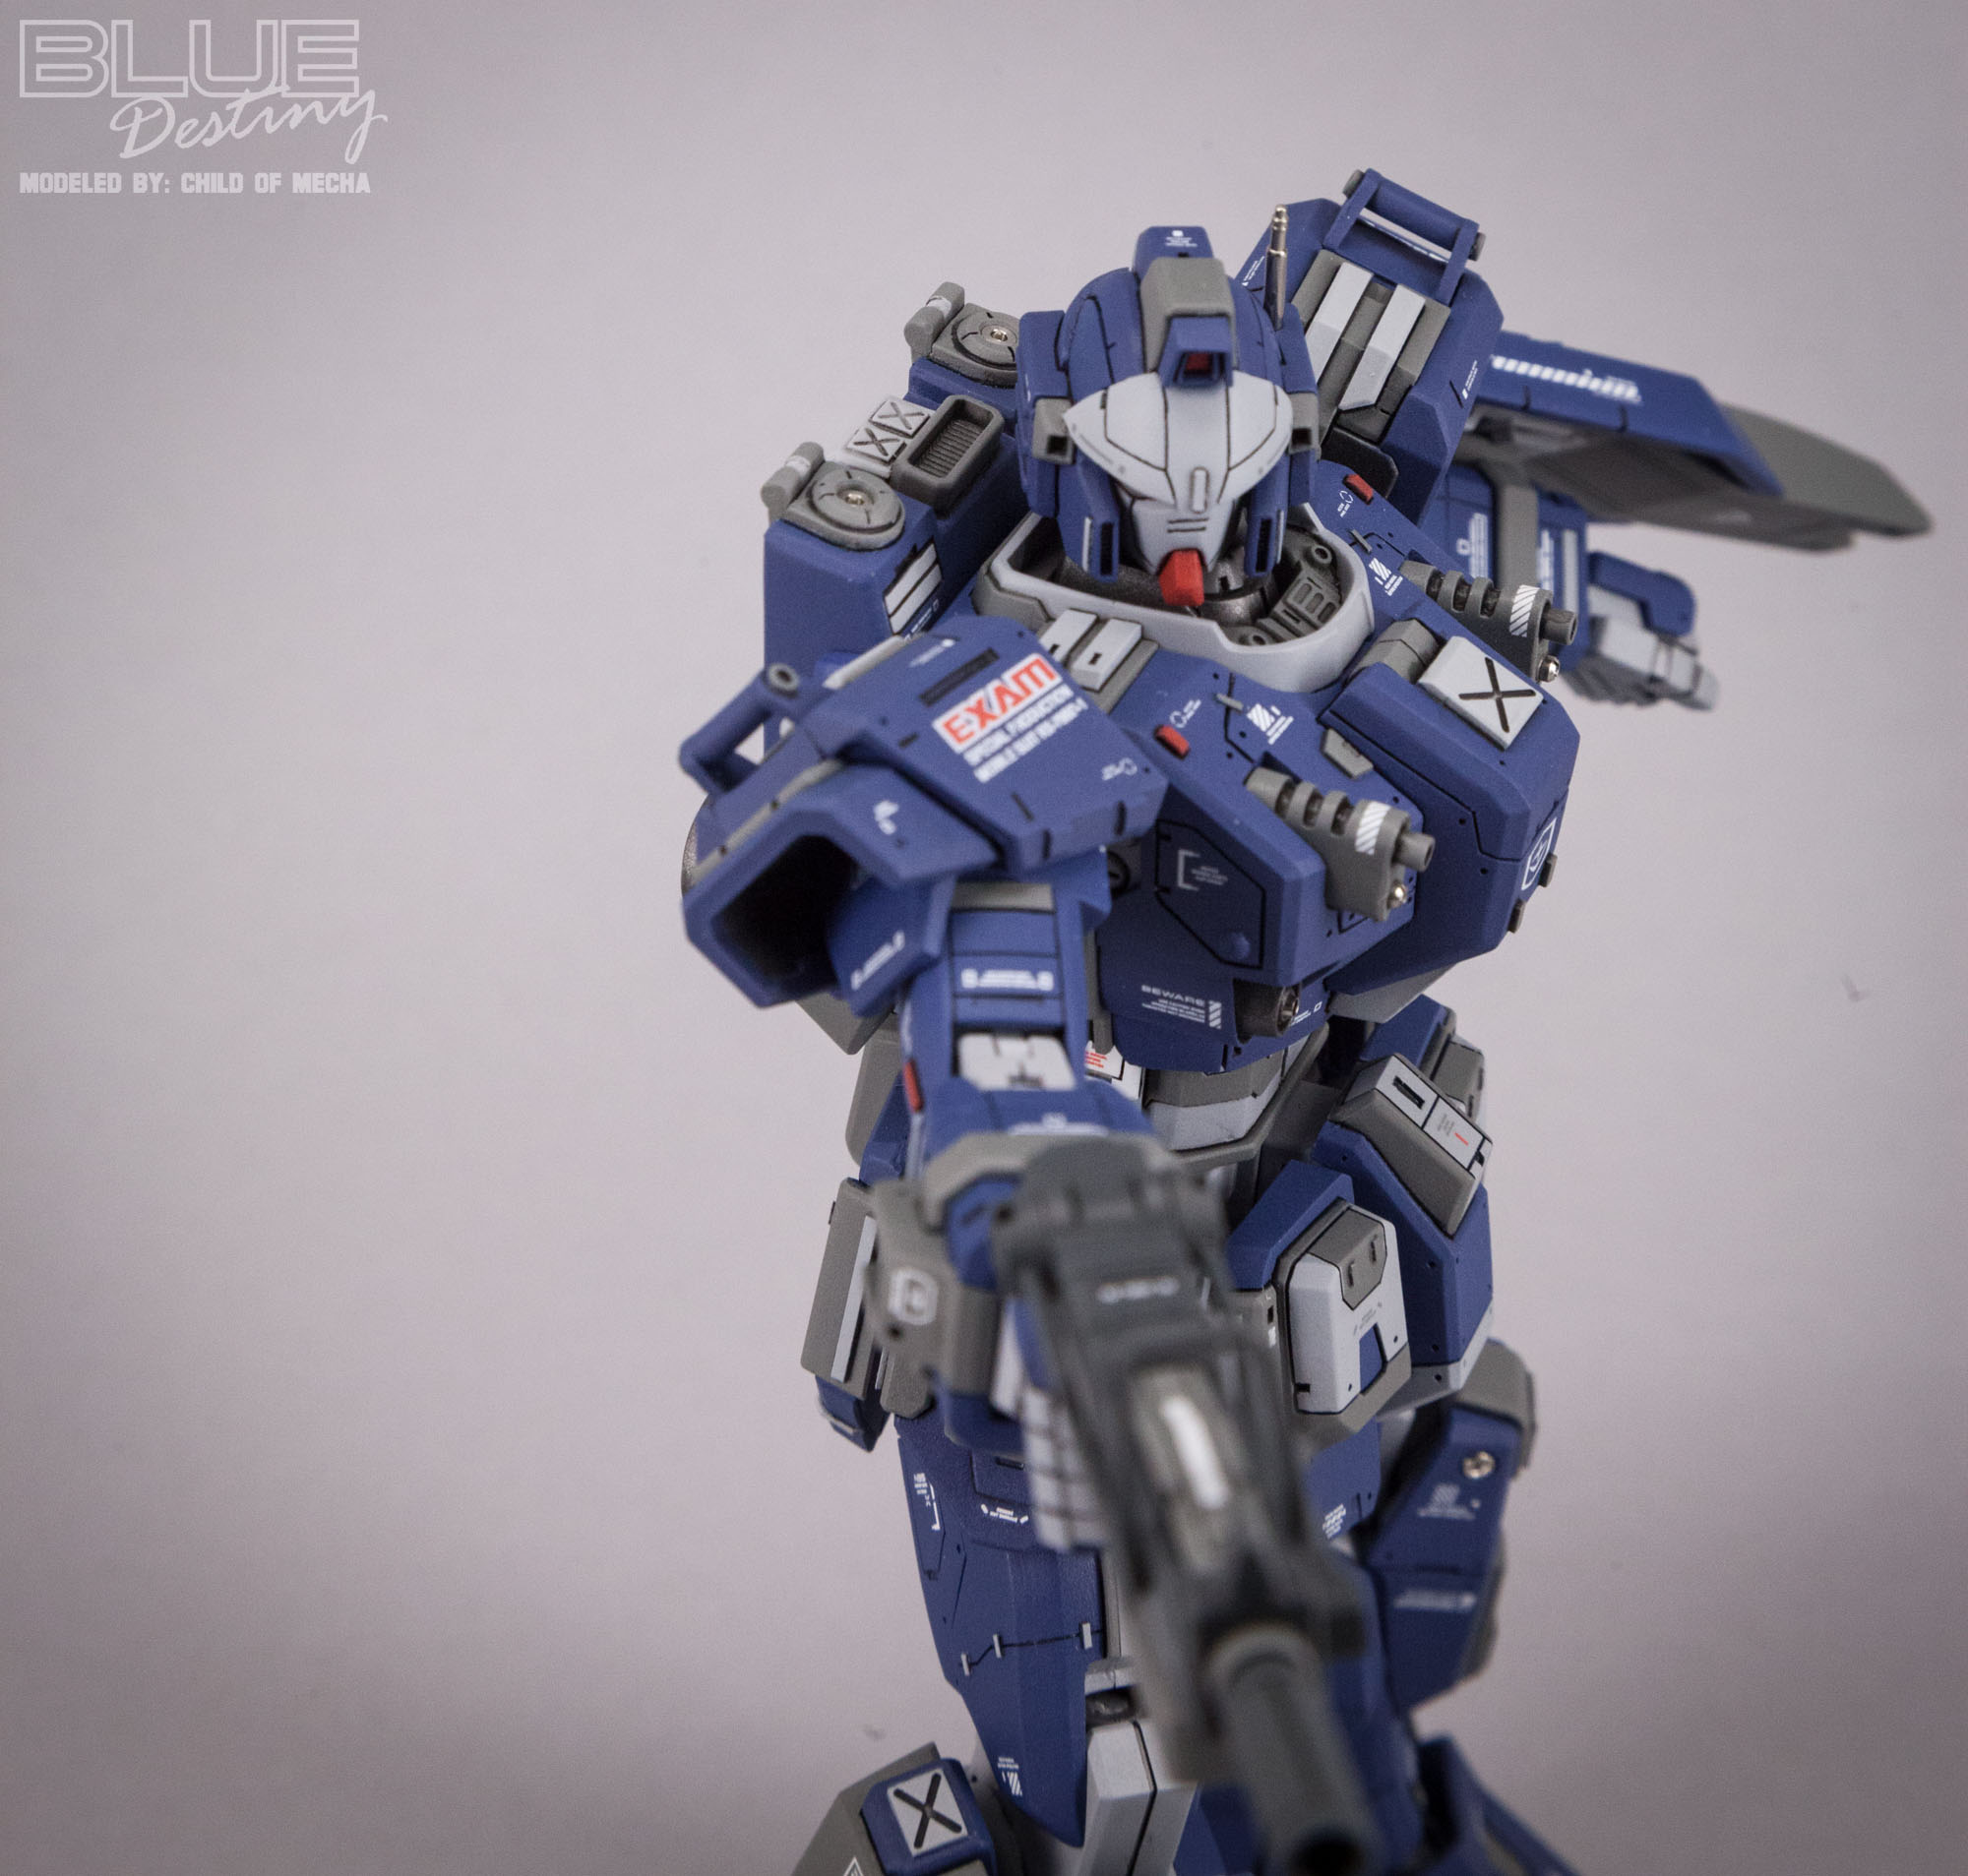 Blue Destiny Refurbished (59).jpg